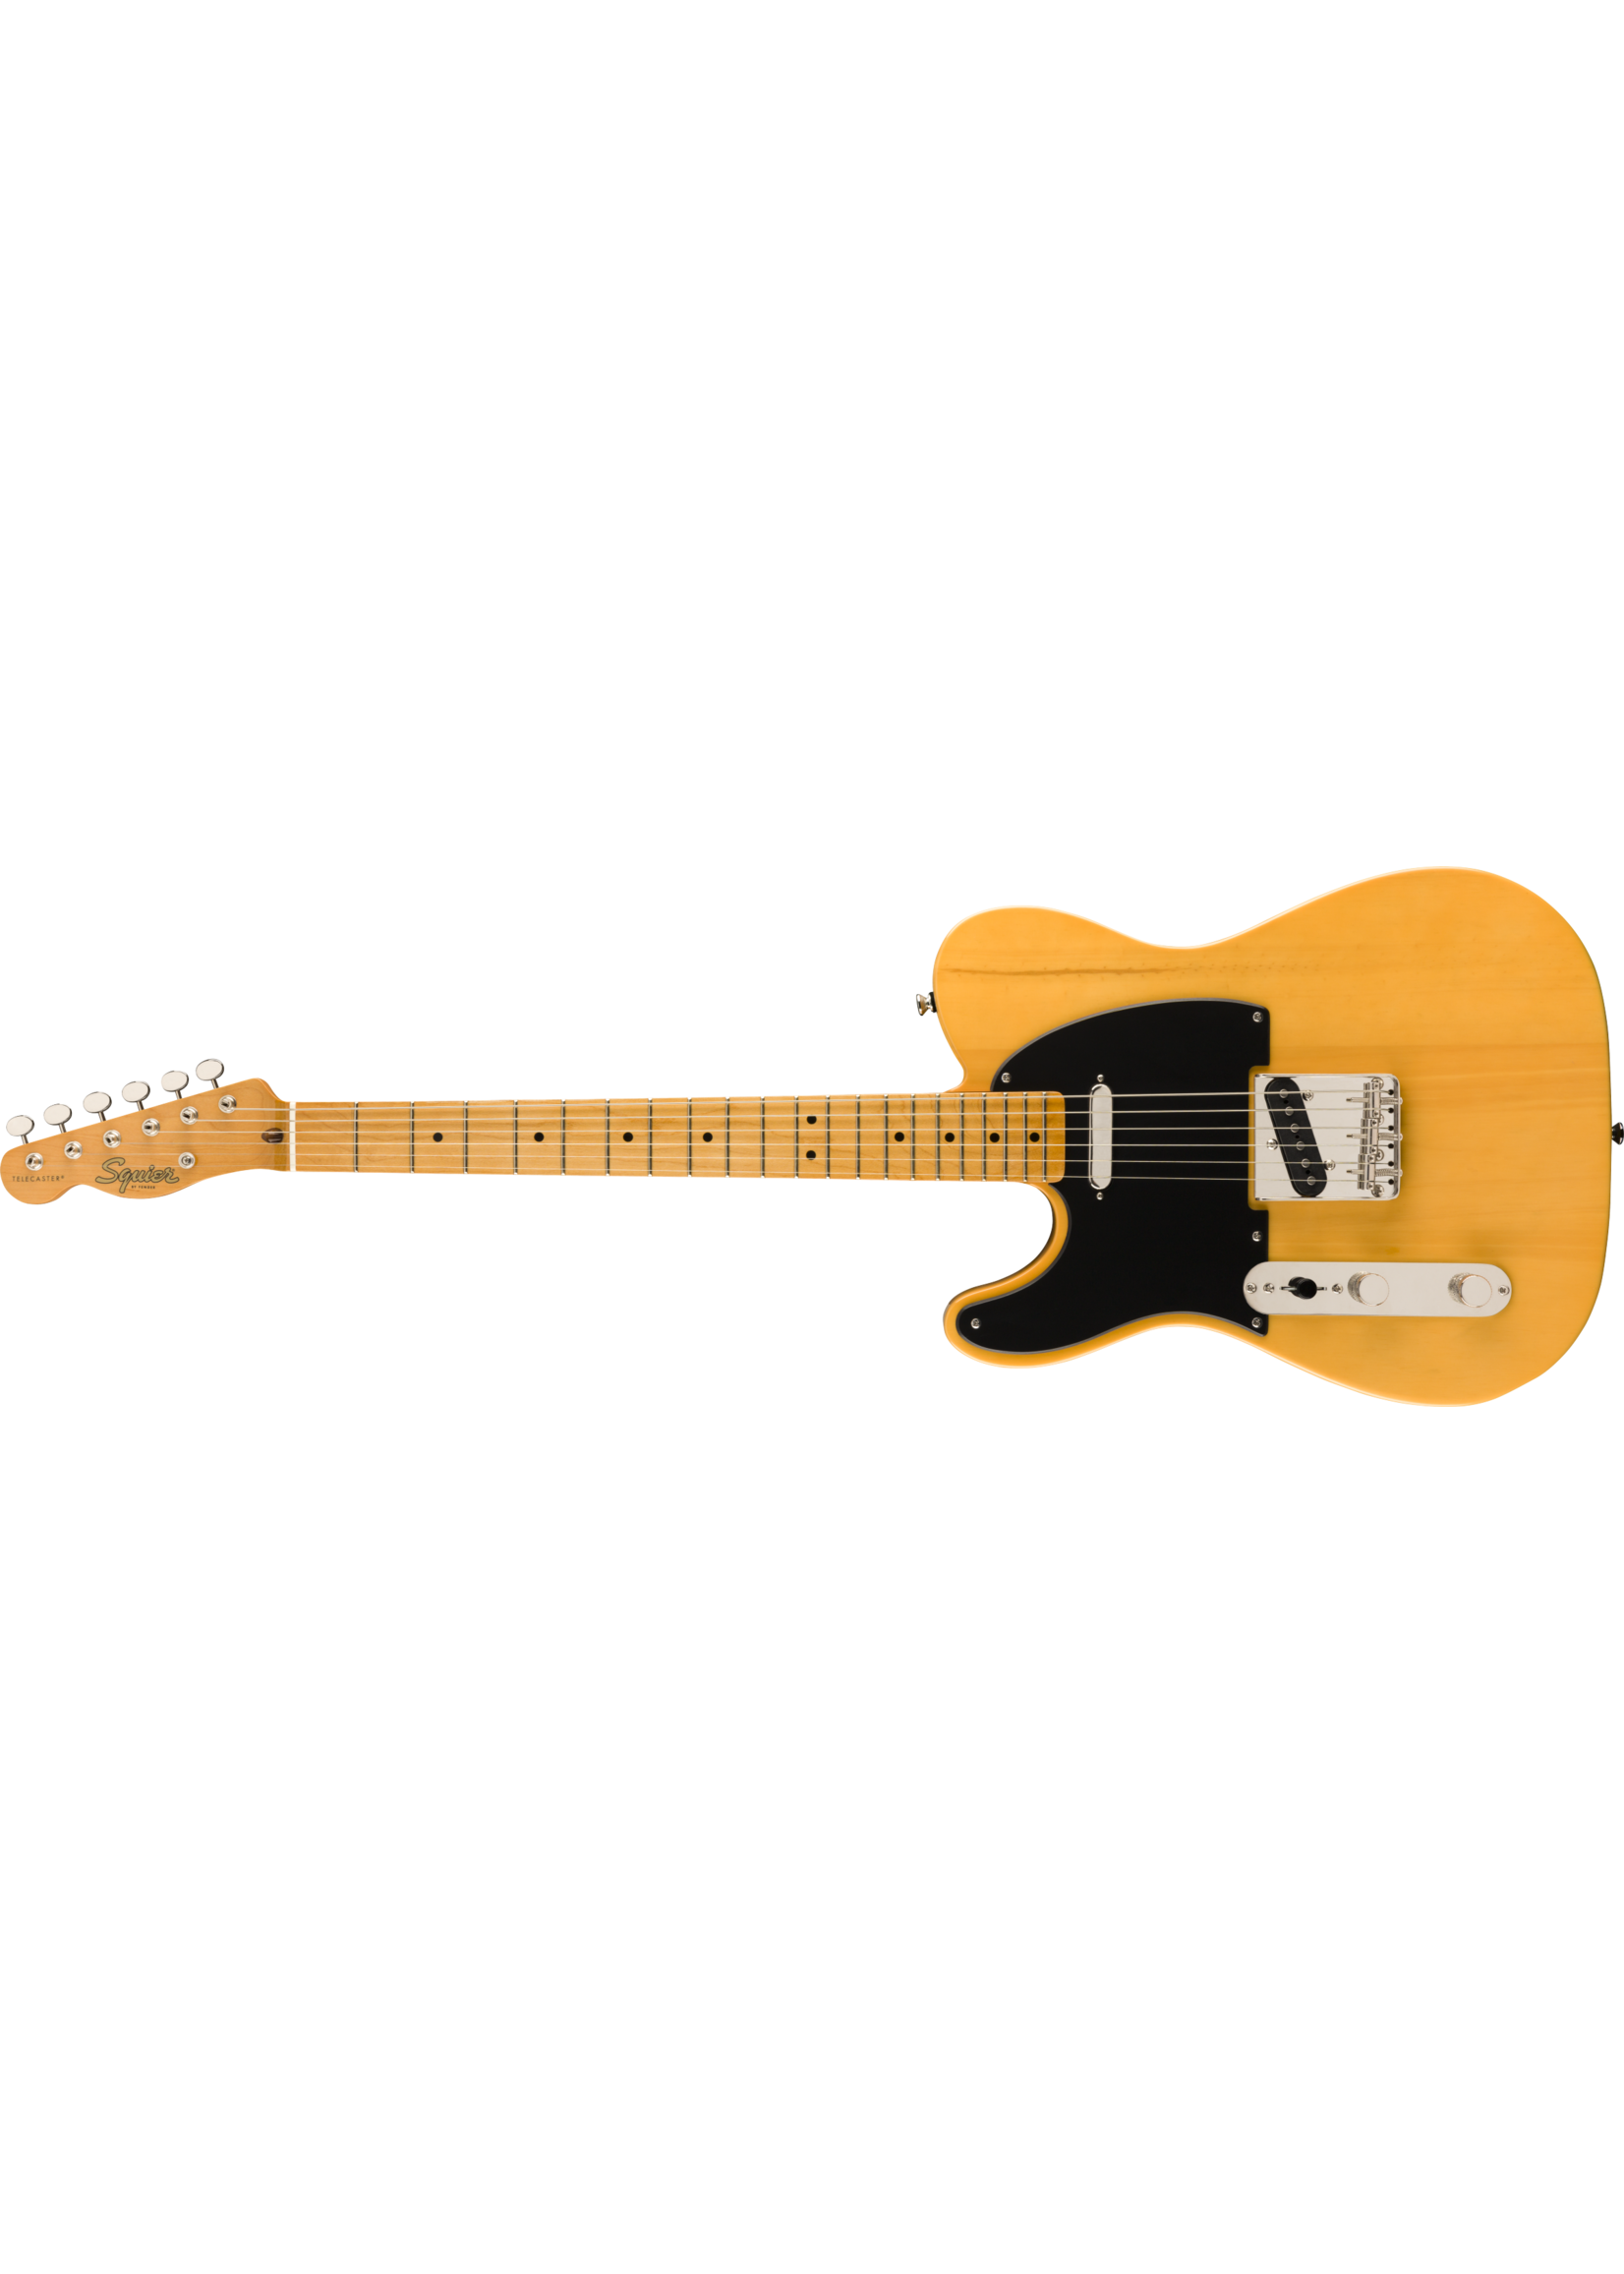 Squier Squier Classic Vibe '50s Telecaster LH Left-Handed MN Maple Neck Butterscotch Blonde